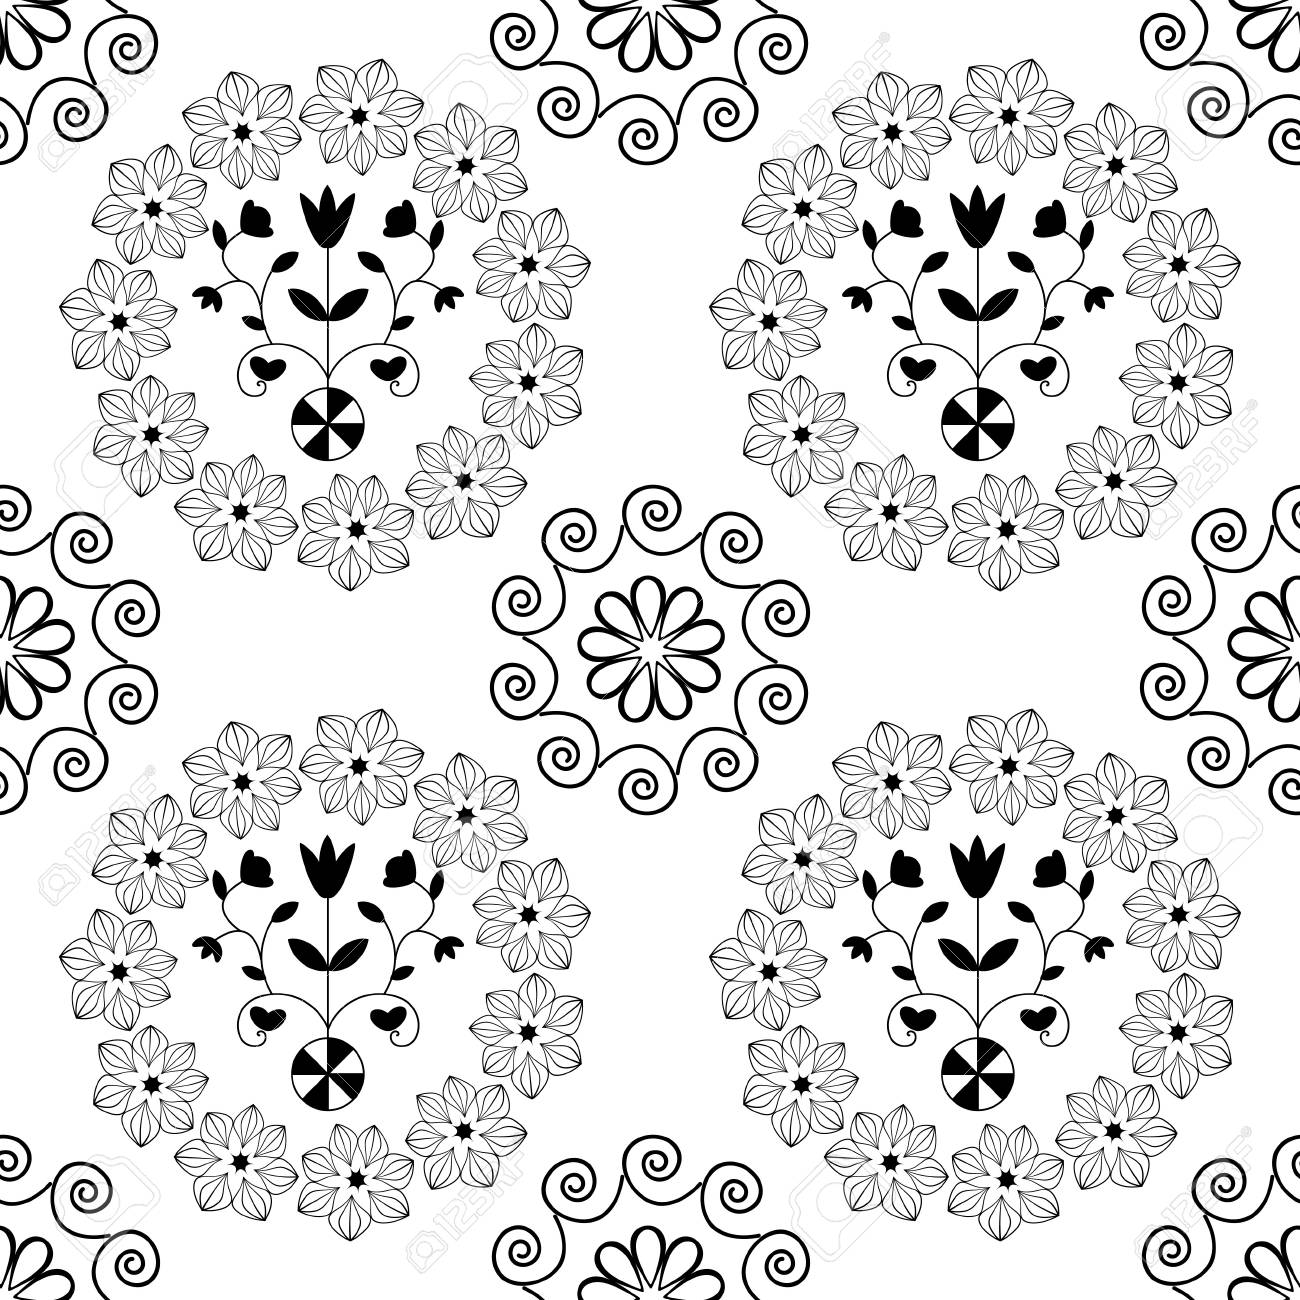 Black and white seamless damask floral pattern Stock Photo - 15914447